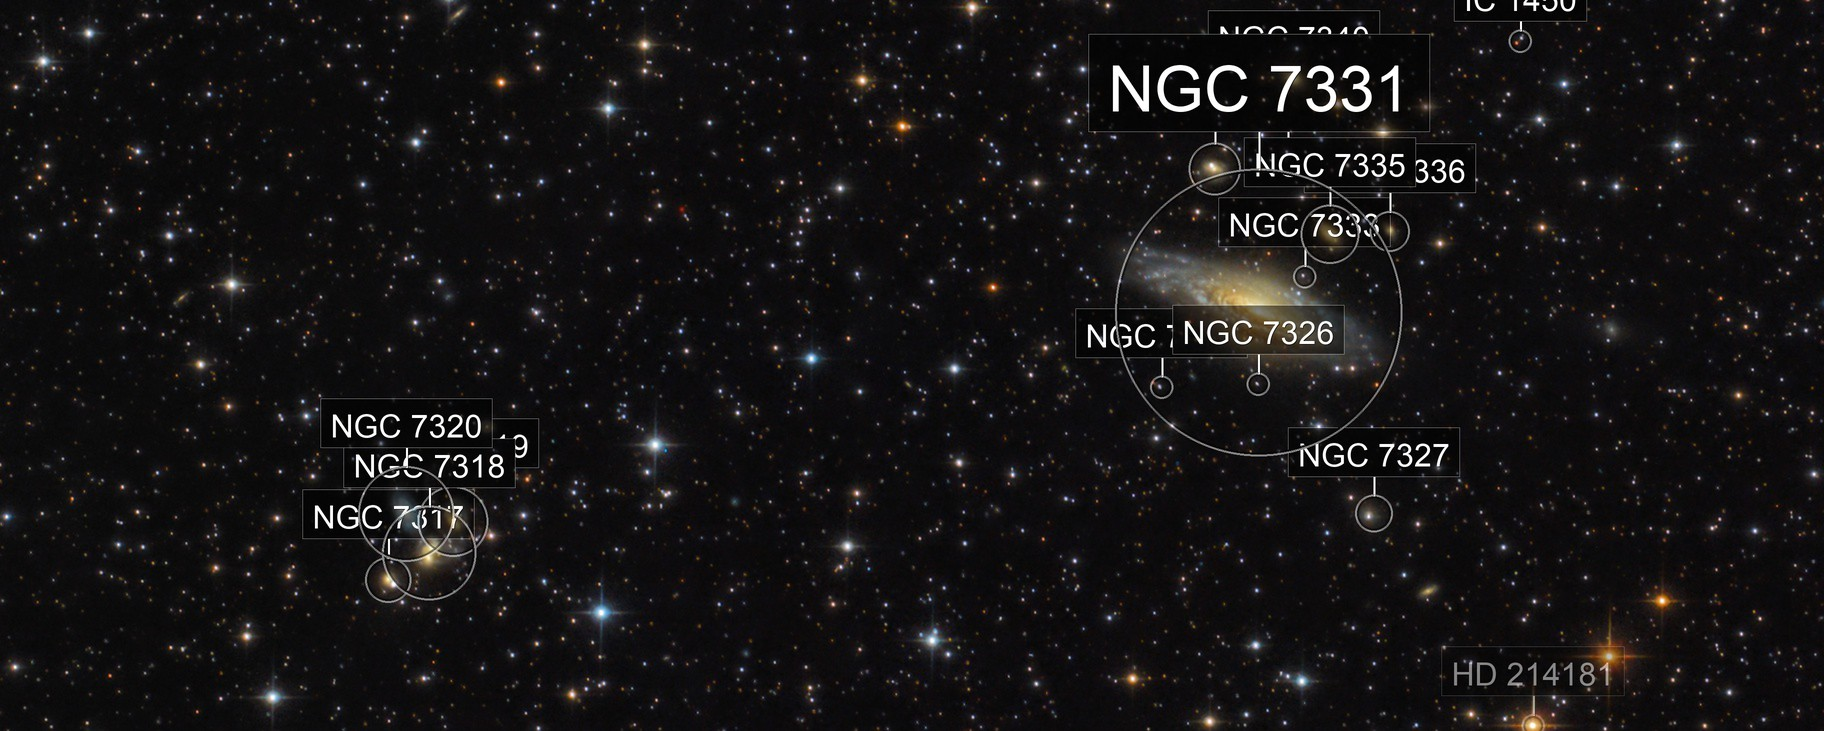 Stephan's Quintet and NGC 7331